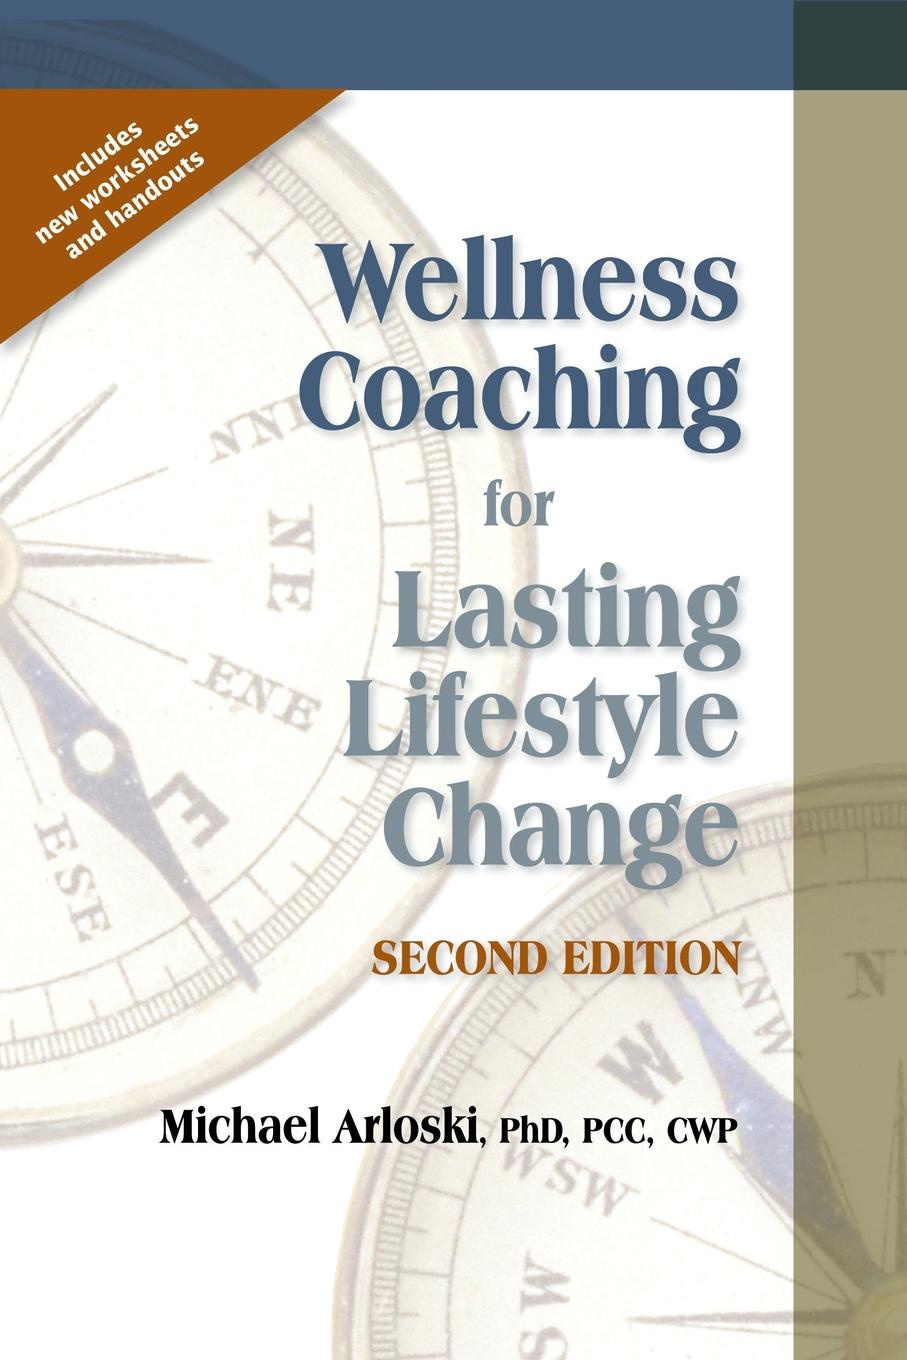 Michael Arloski Wellness Coaching for Lasting Lifestyle Change - 2nd Edition david taylor the naked coach business coaching made simple